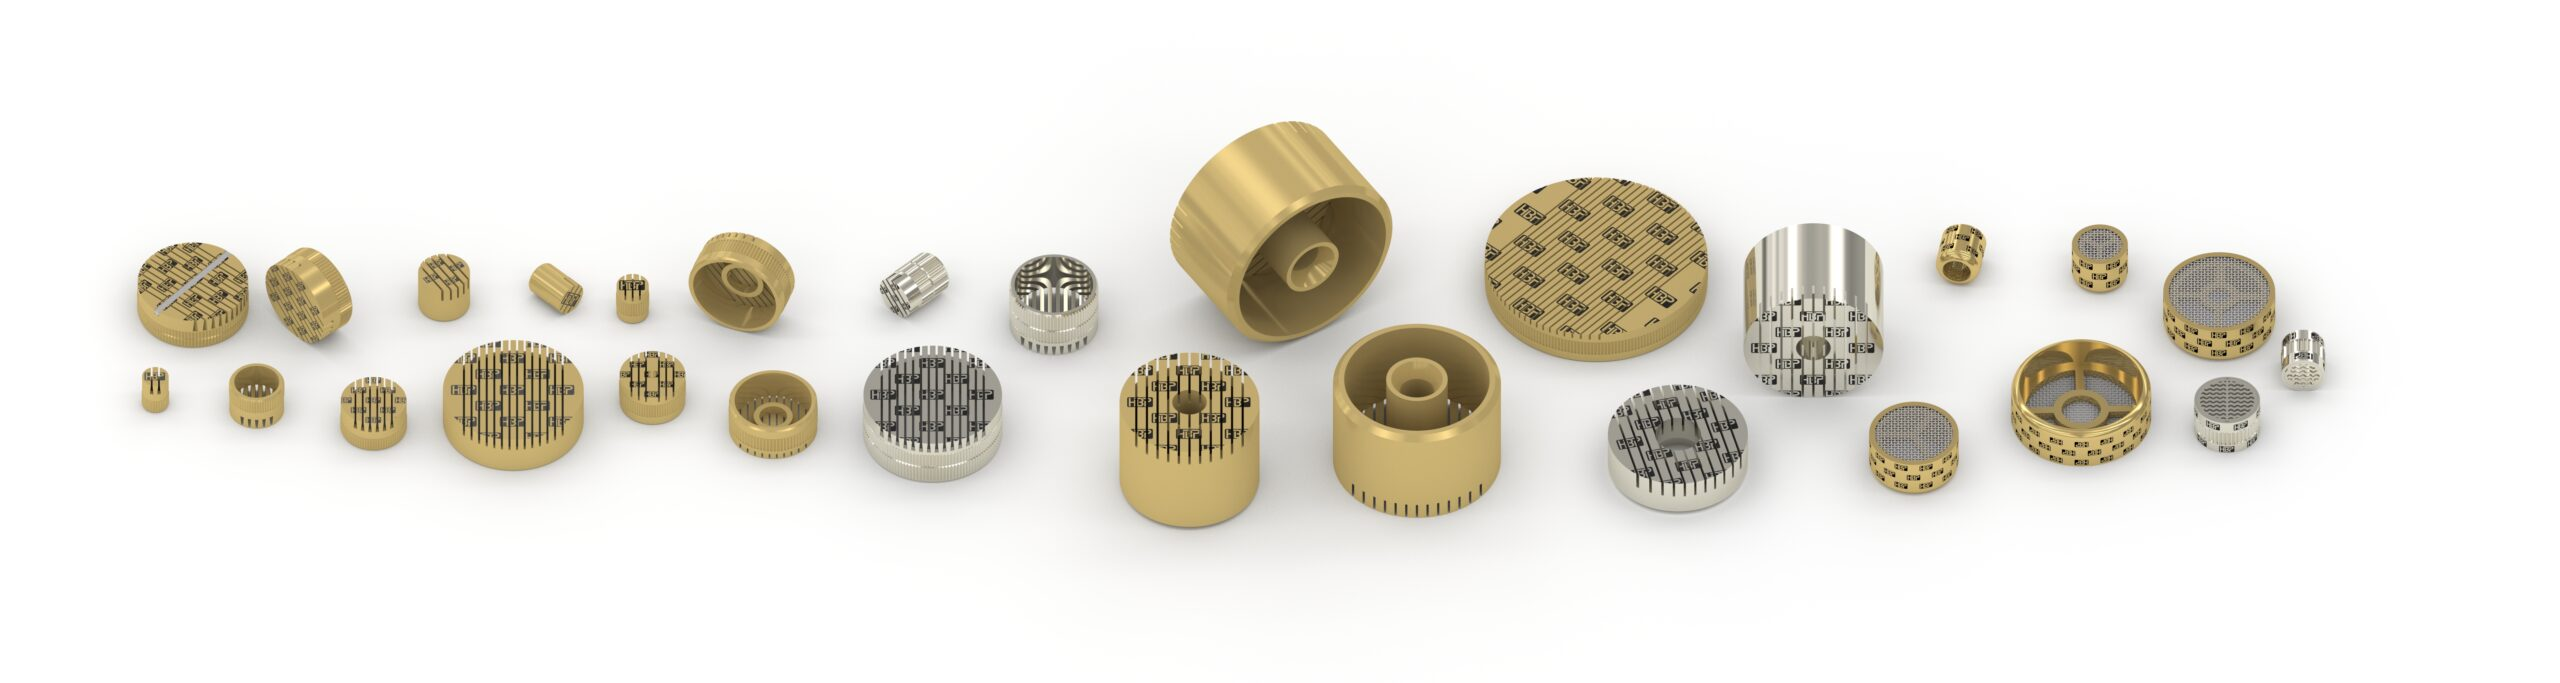 Core Vents by Himalaya Brass Products